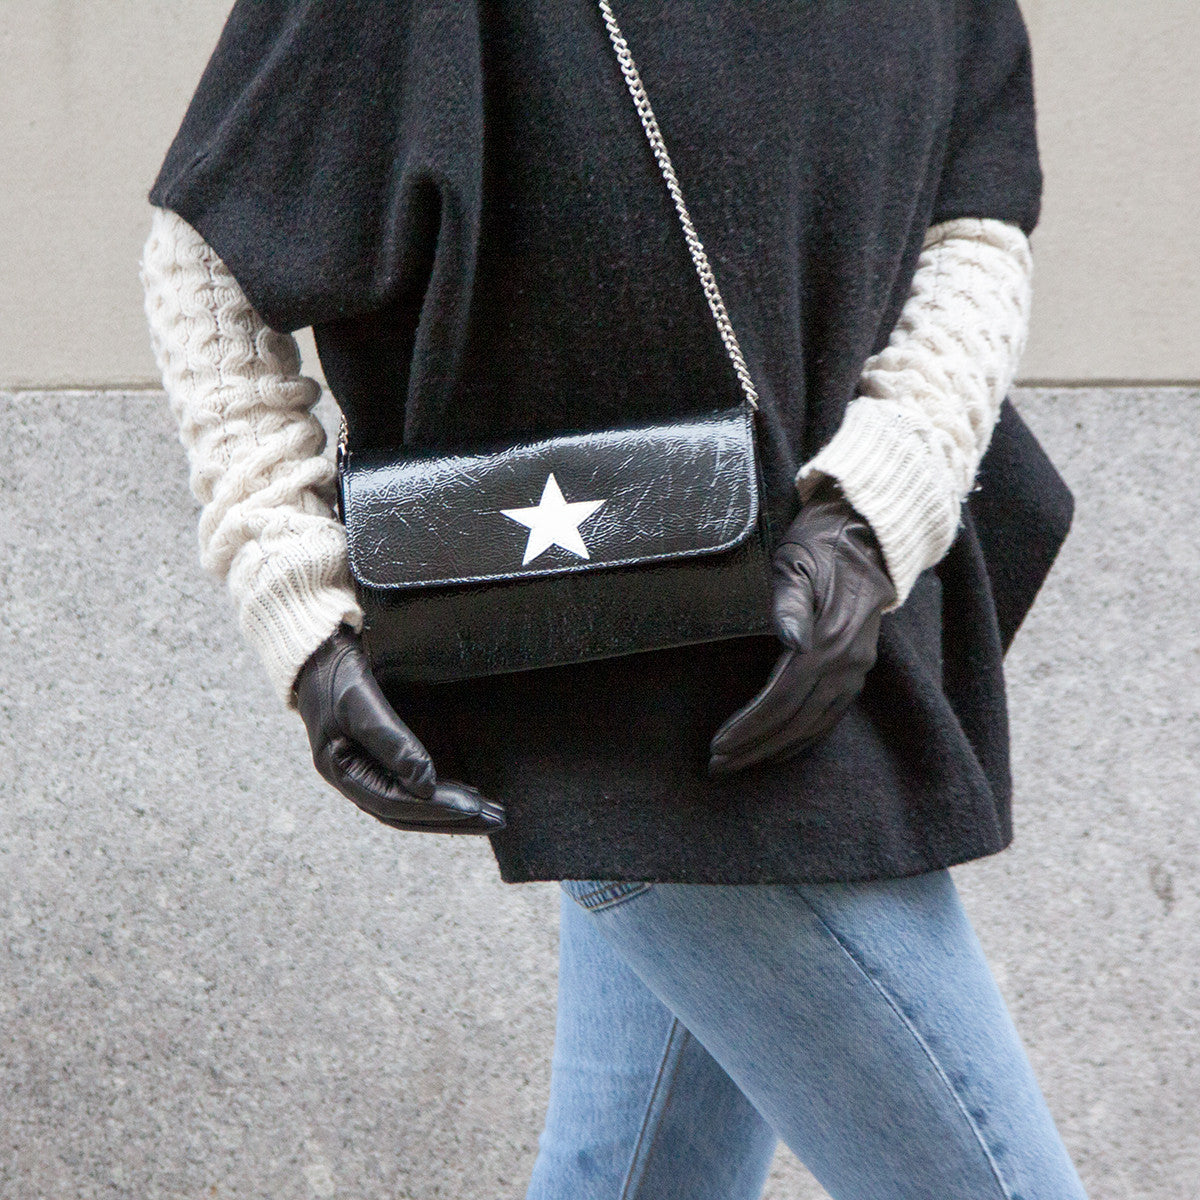 Mich Shoulder Bag Cracked Black Patent Leather w/ White Star - erindananewyork - 2